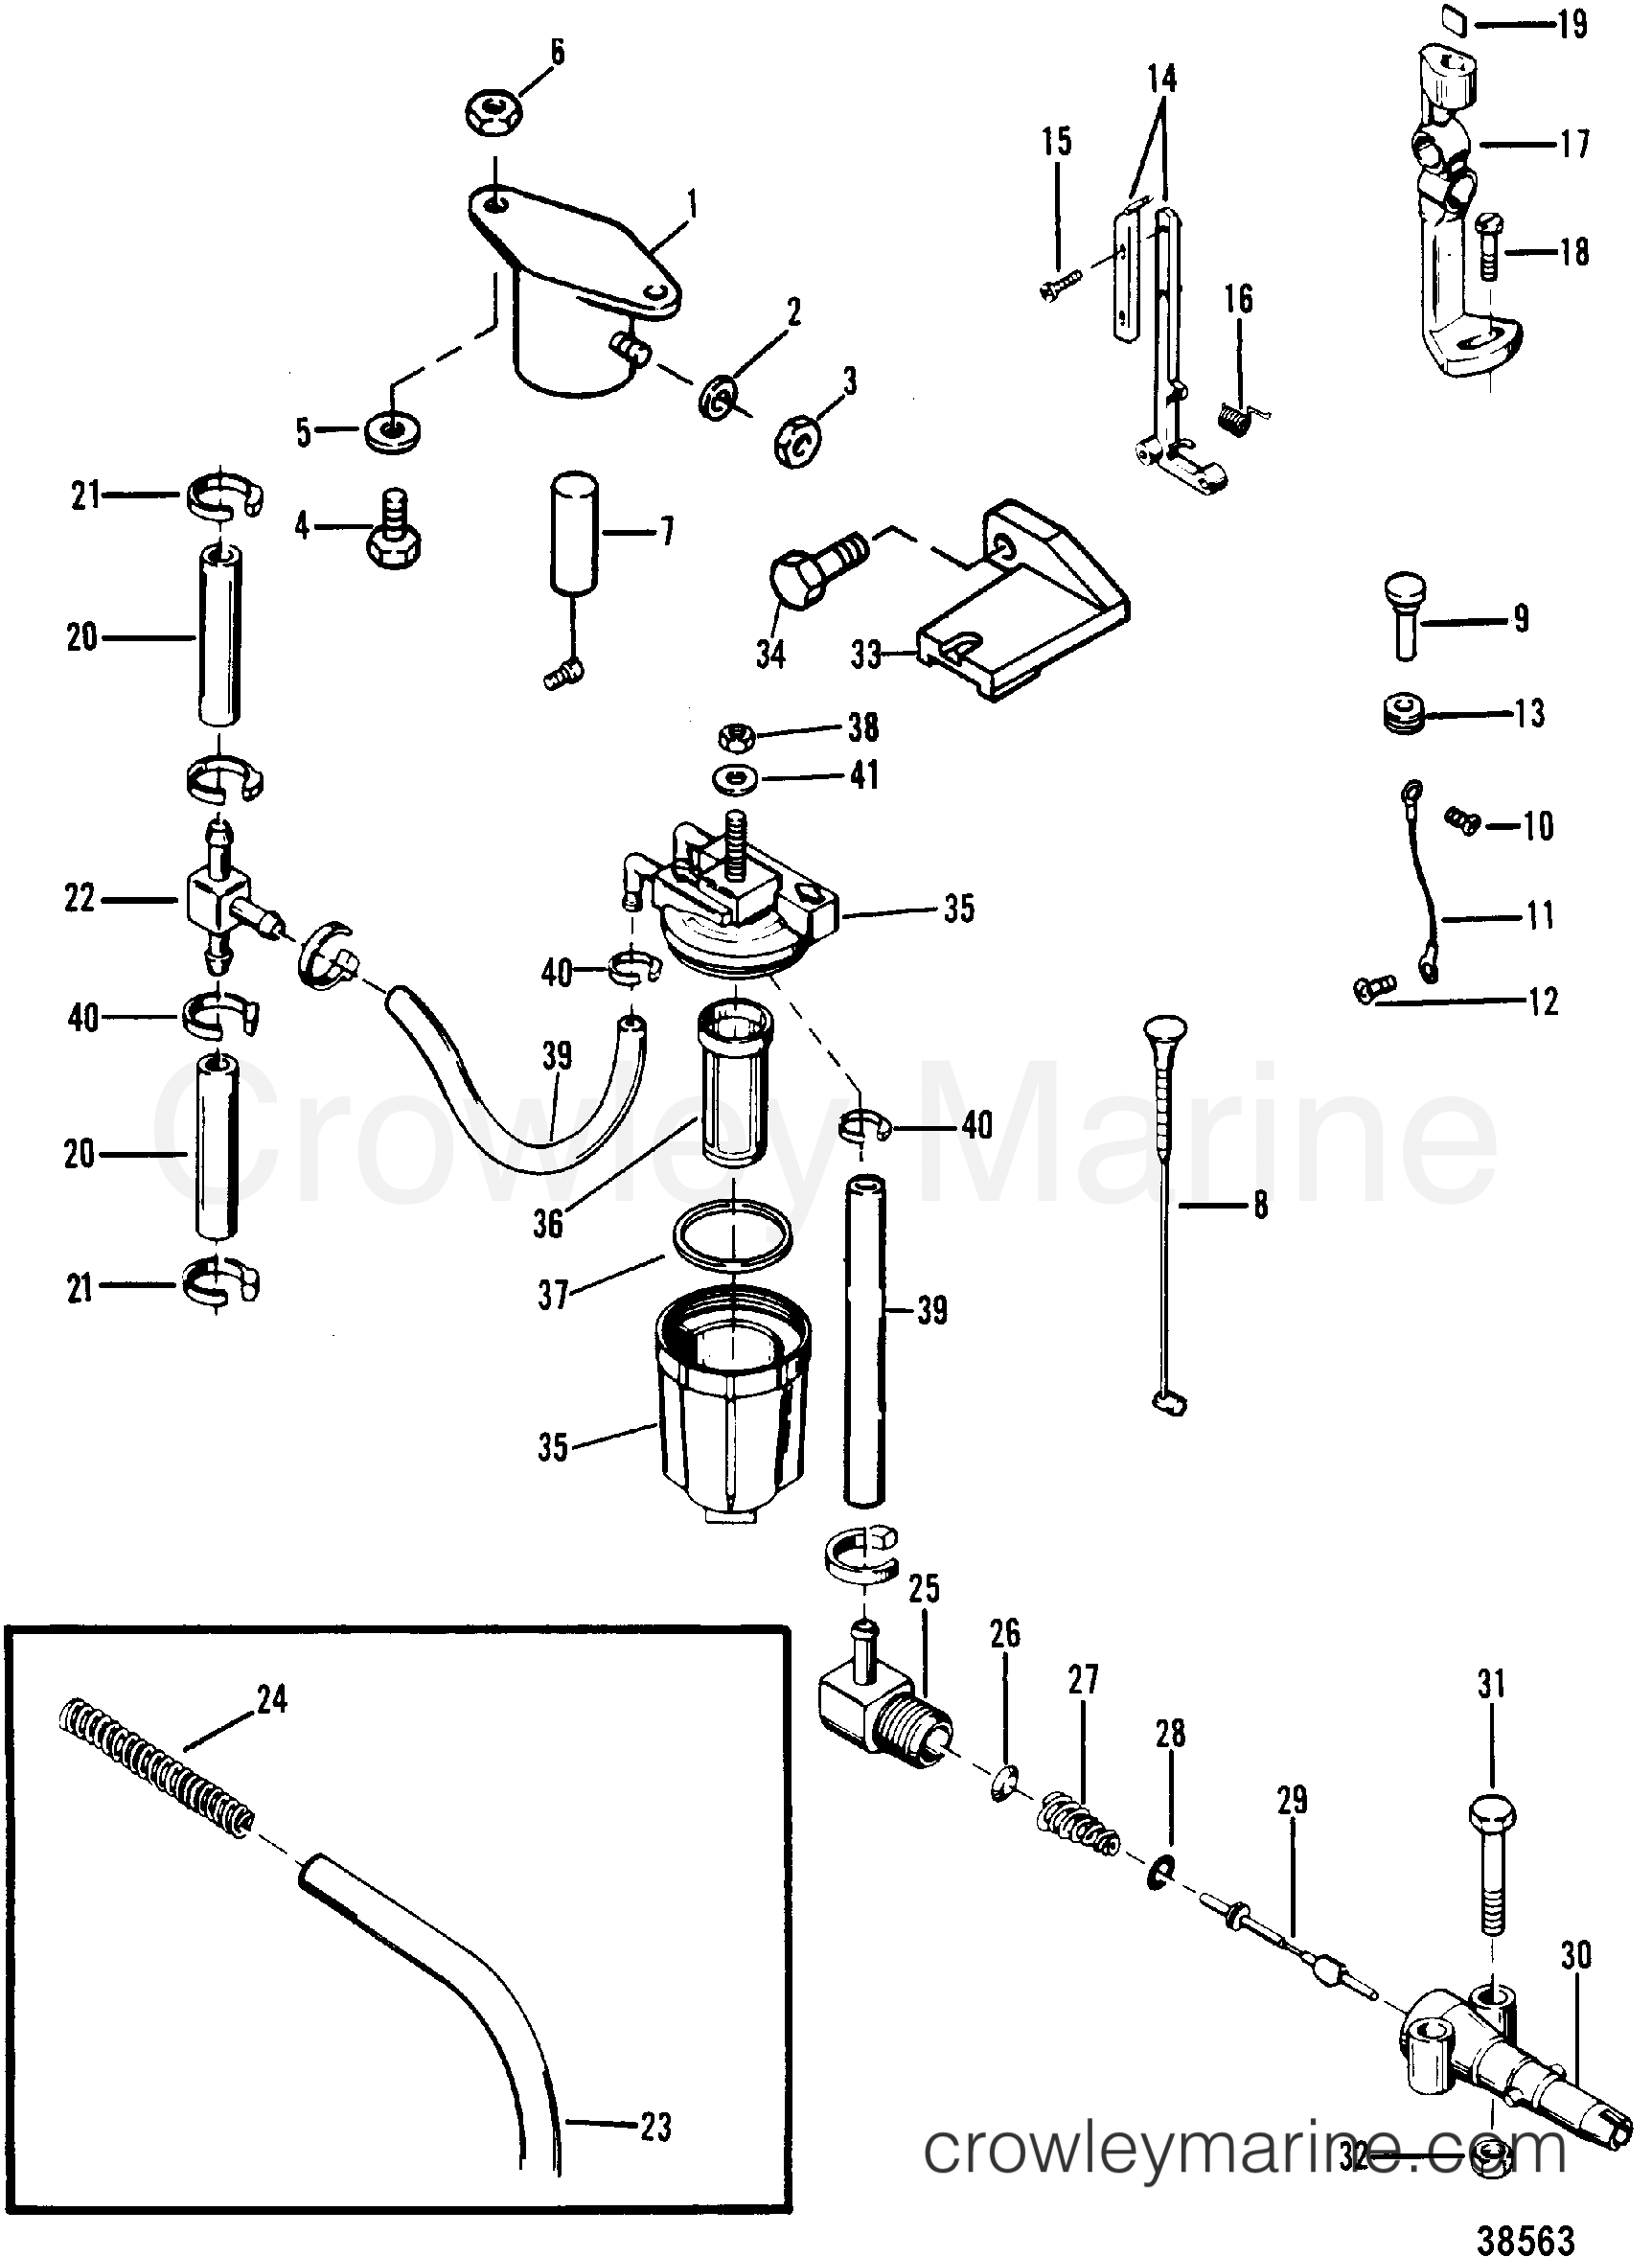 carburetor linkage  choke solenoid